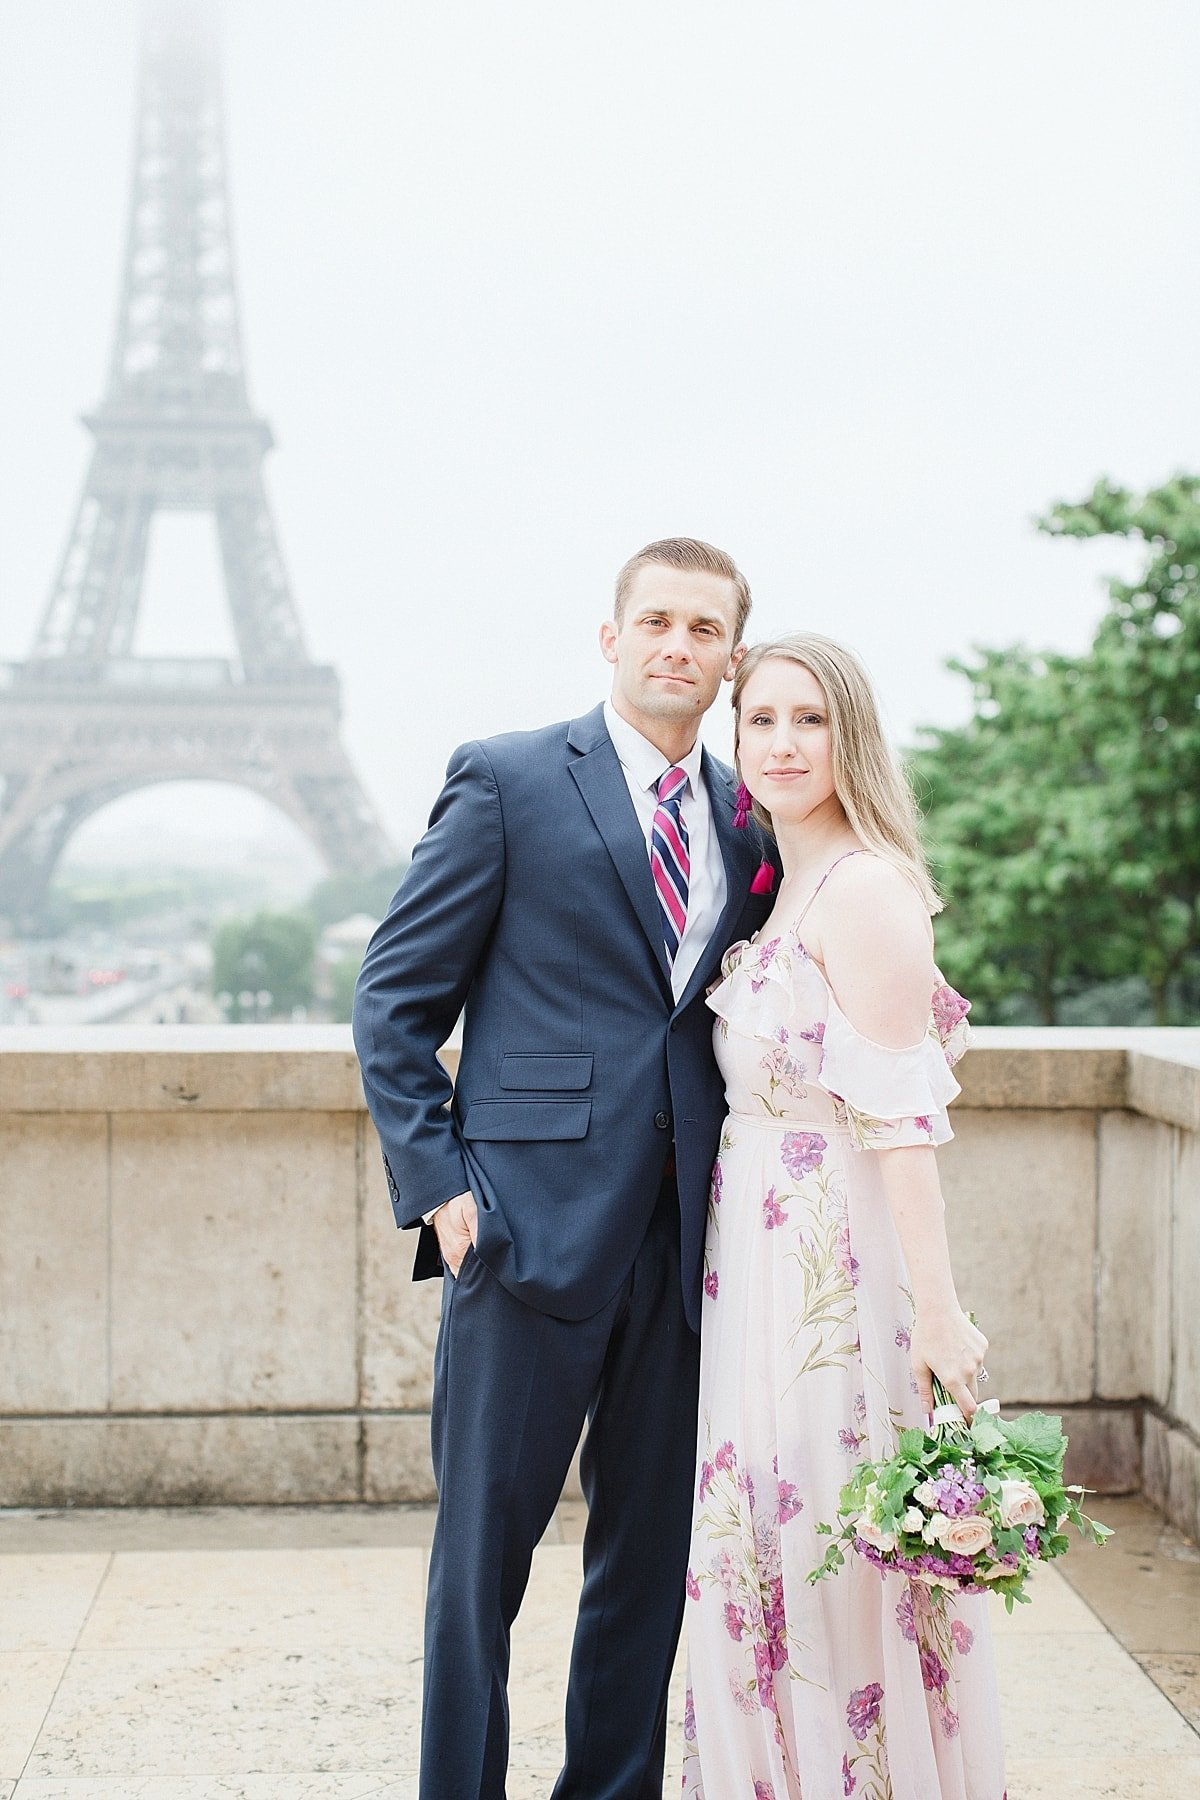 paris-photo-session-anniversary-alicia-yarrish-photography_17